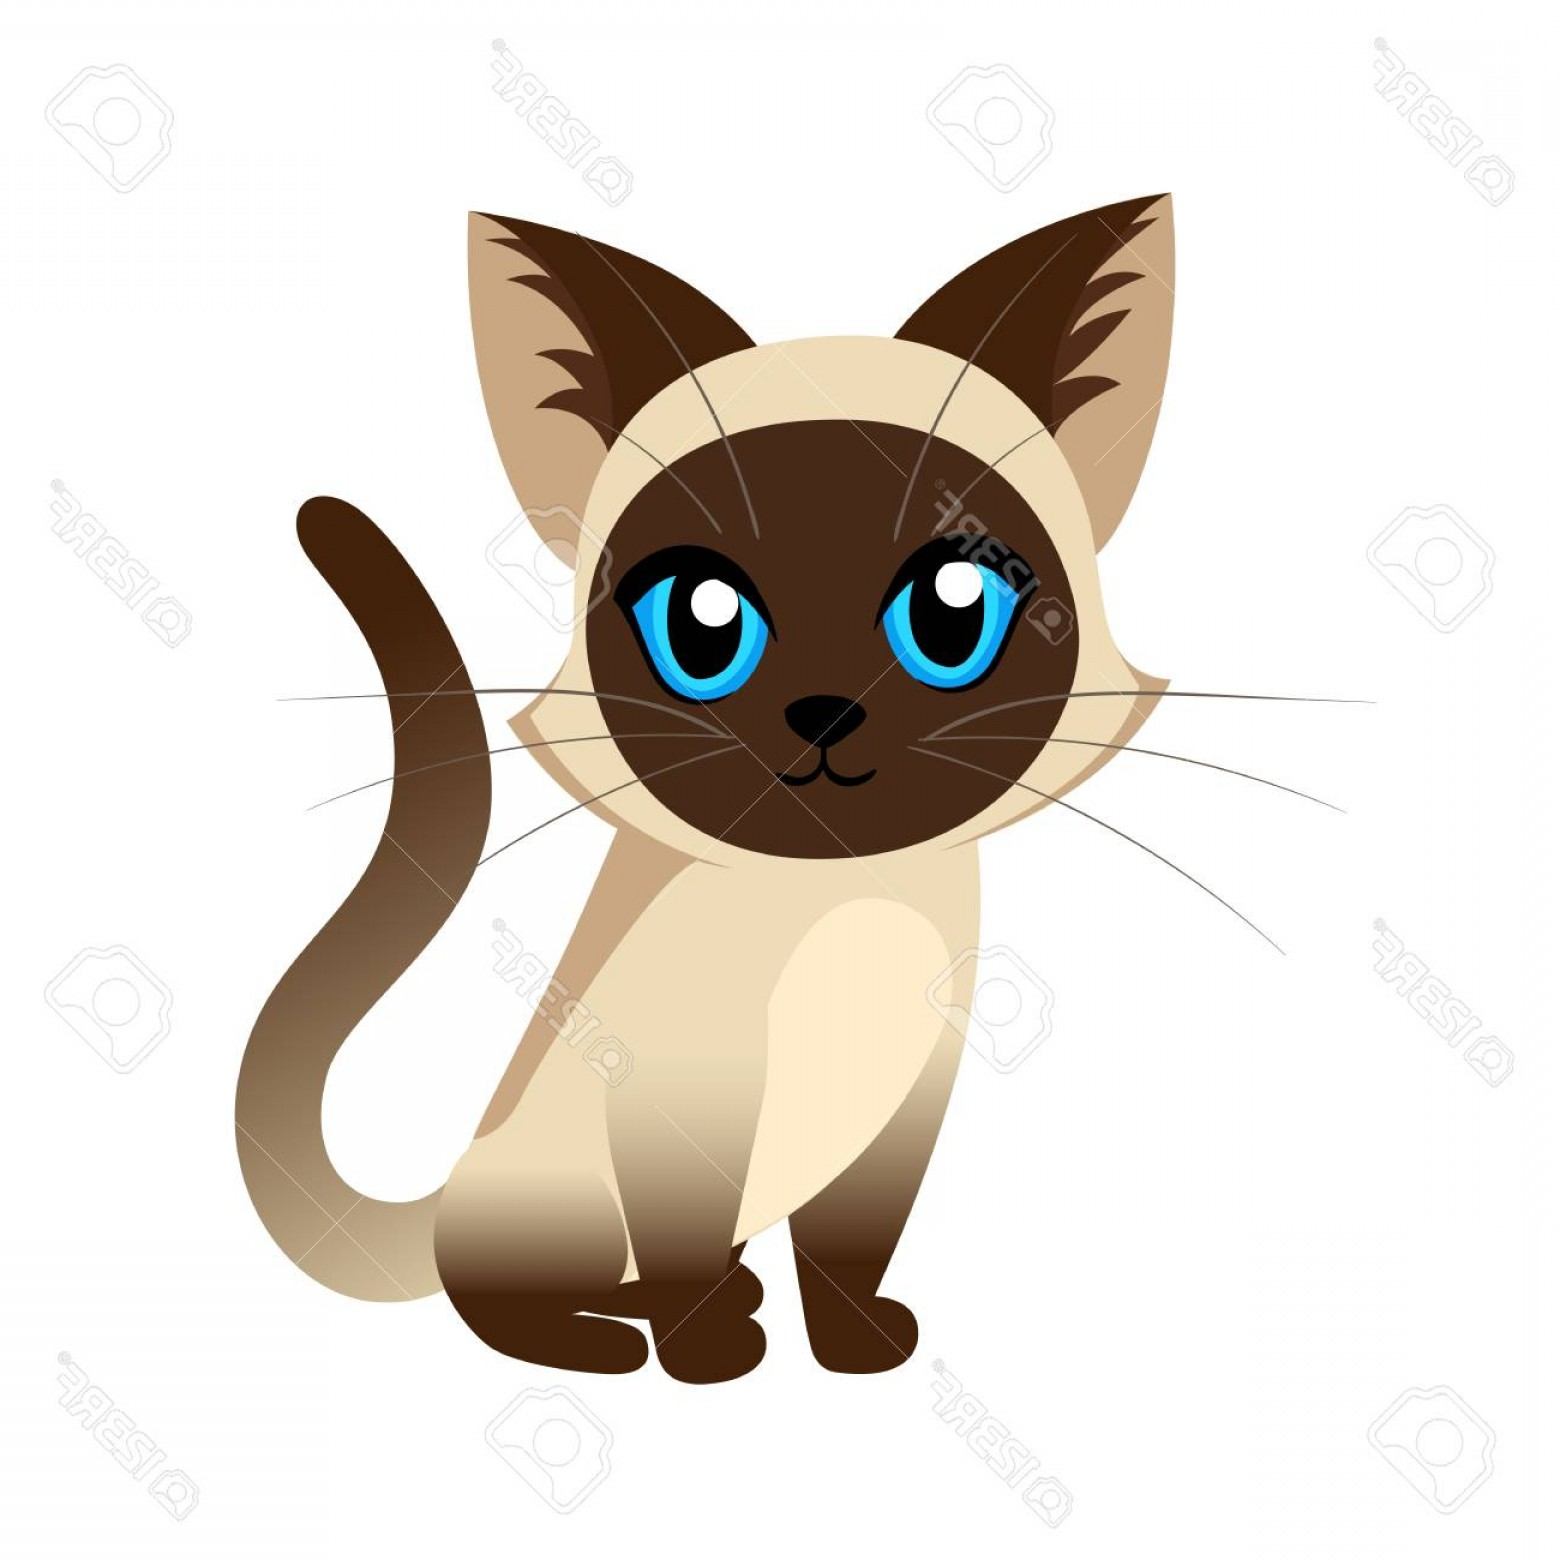 Siamese Cat Vector Transparent Background: Photostock Vector Siamese Cat The Lovely Kitten With Blue Eyes Fluffy On A White Background Spotty A Pet Cat Breeds Cu